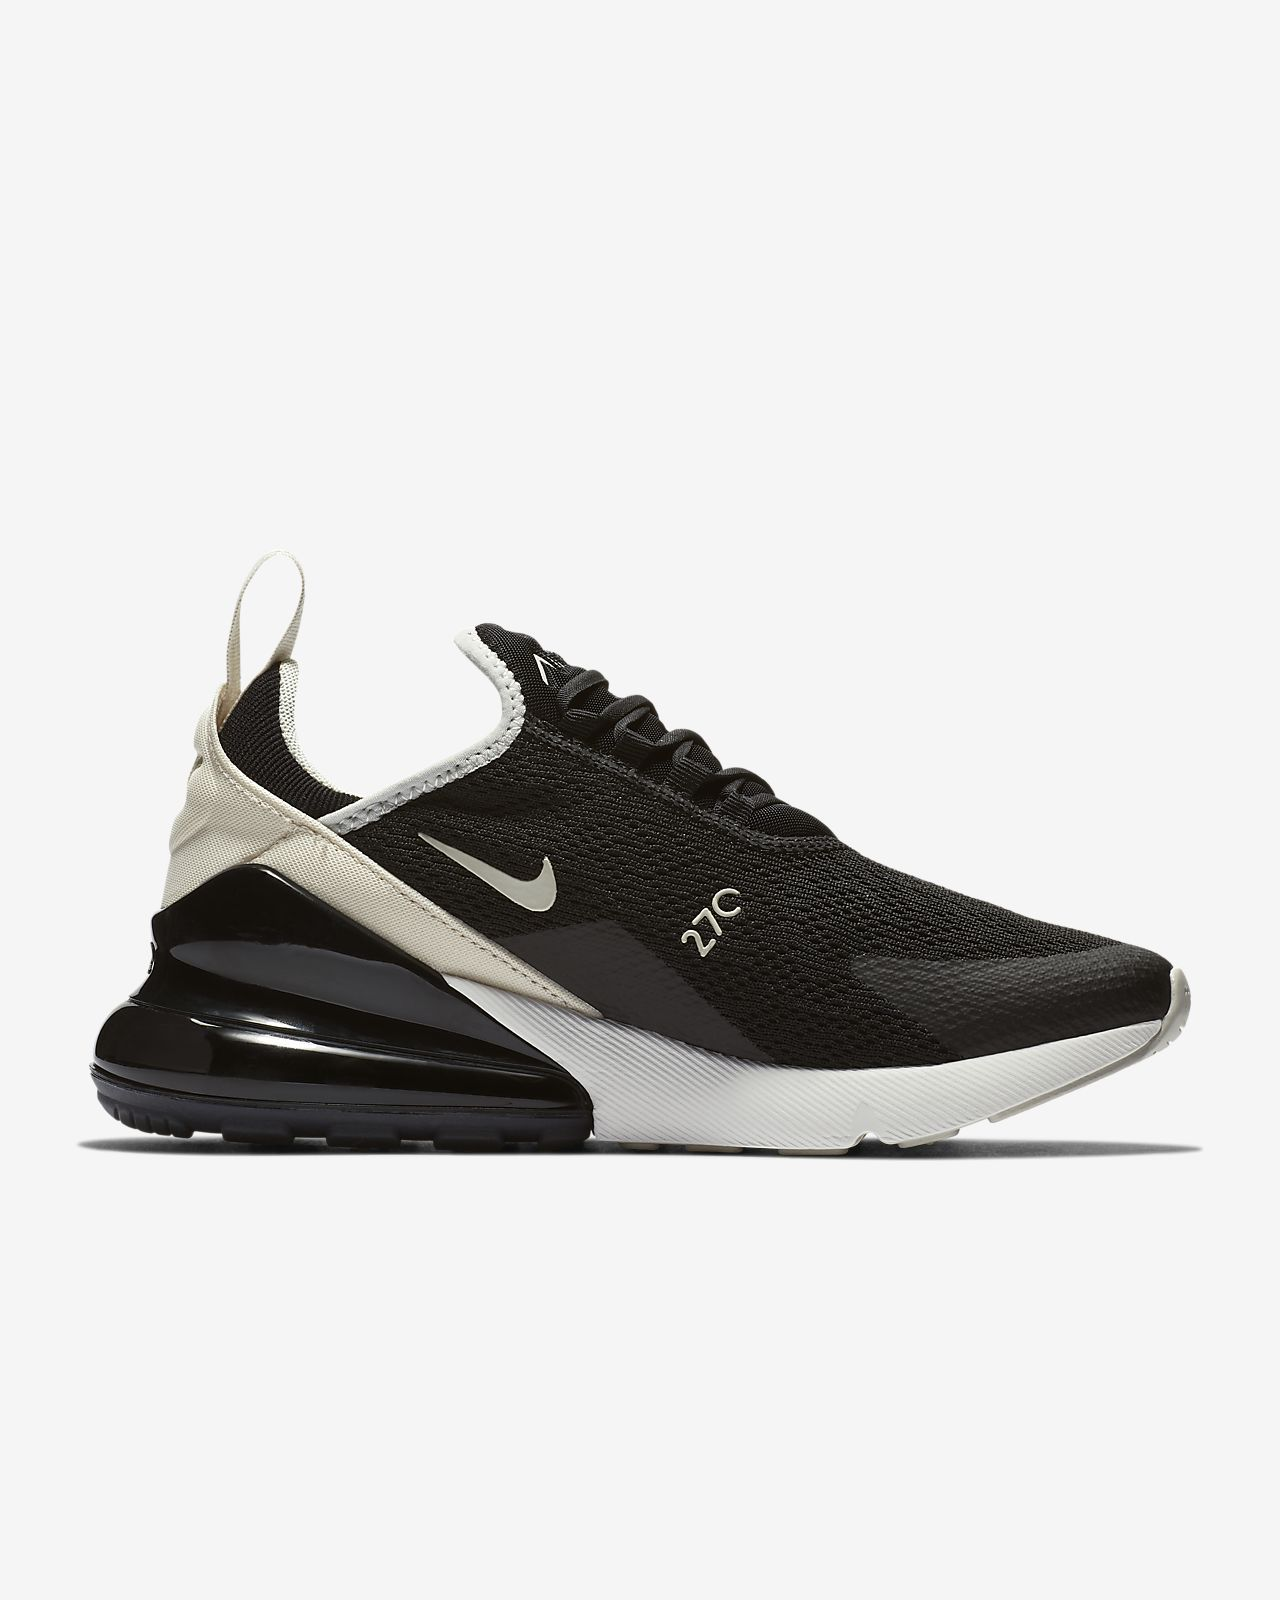 3600582f99d75 Nike Air Max 270 Women s Shoe. Nike.com AU